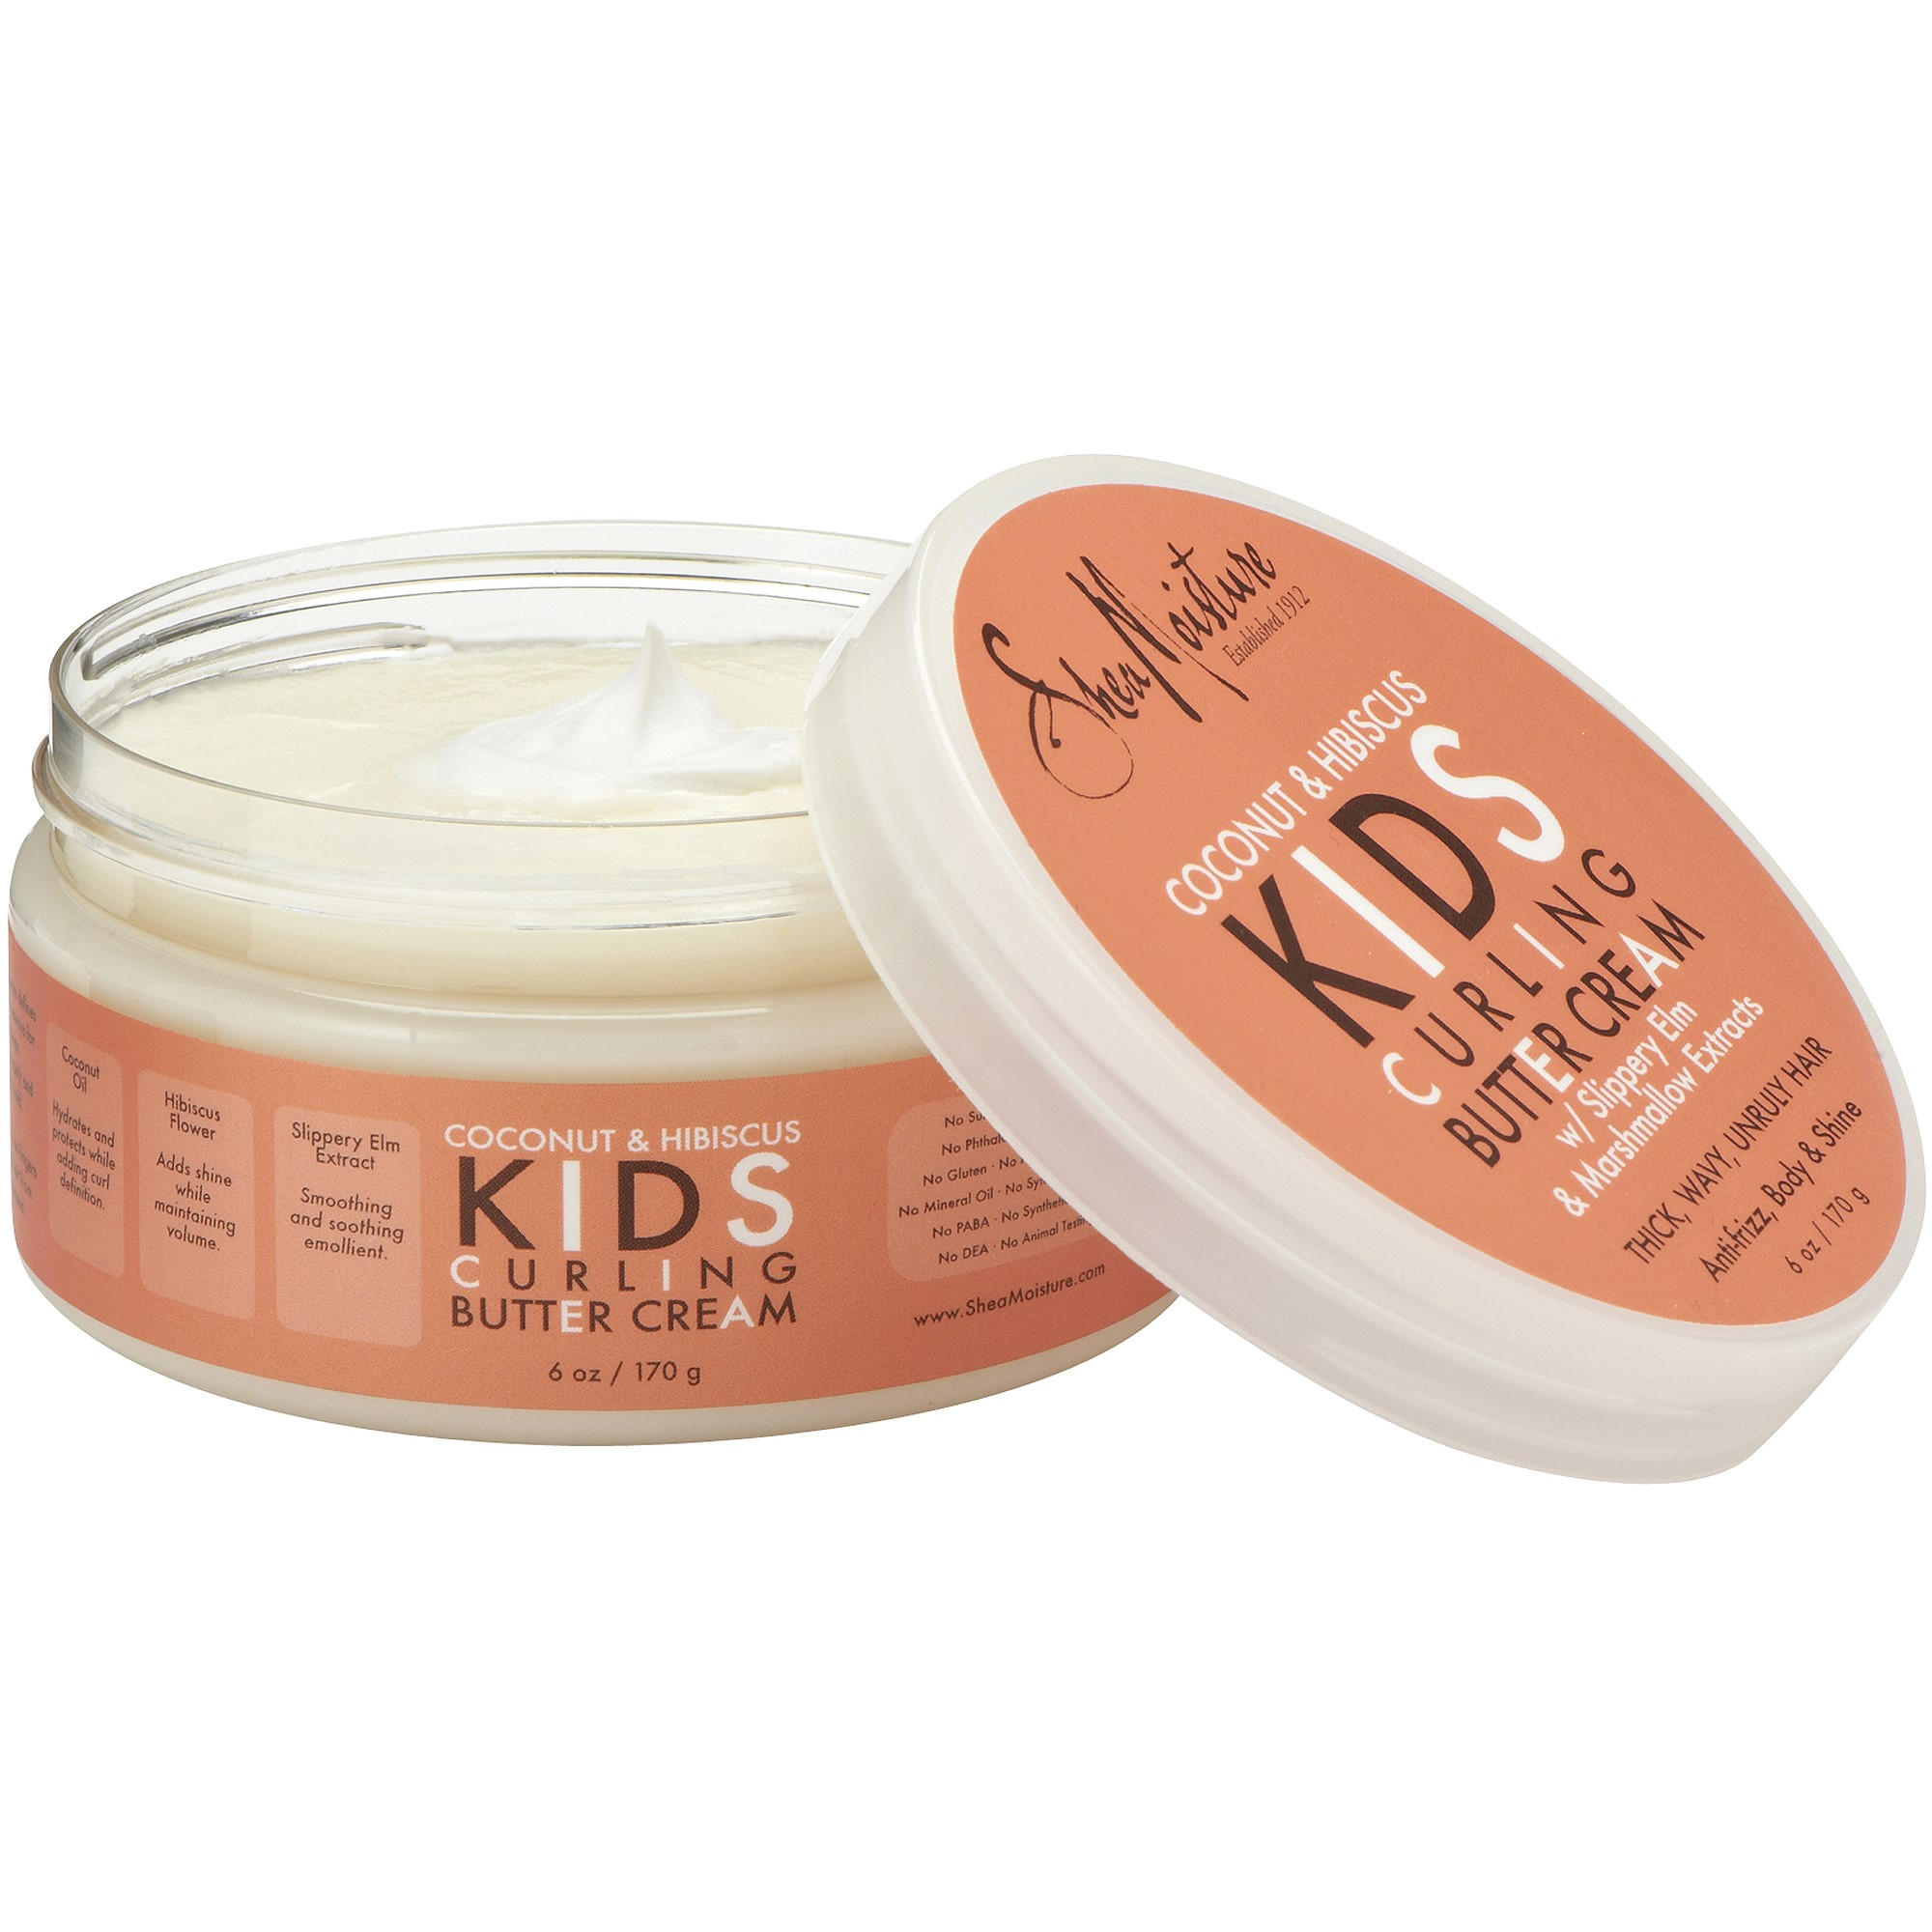 Shea Moisture Kid's Curl Hair Cream, Coconut & Hibiscus, 6 Oz